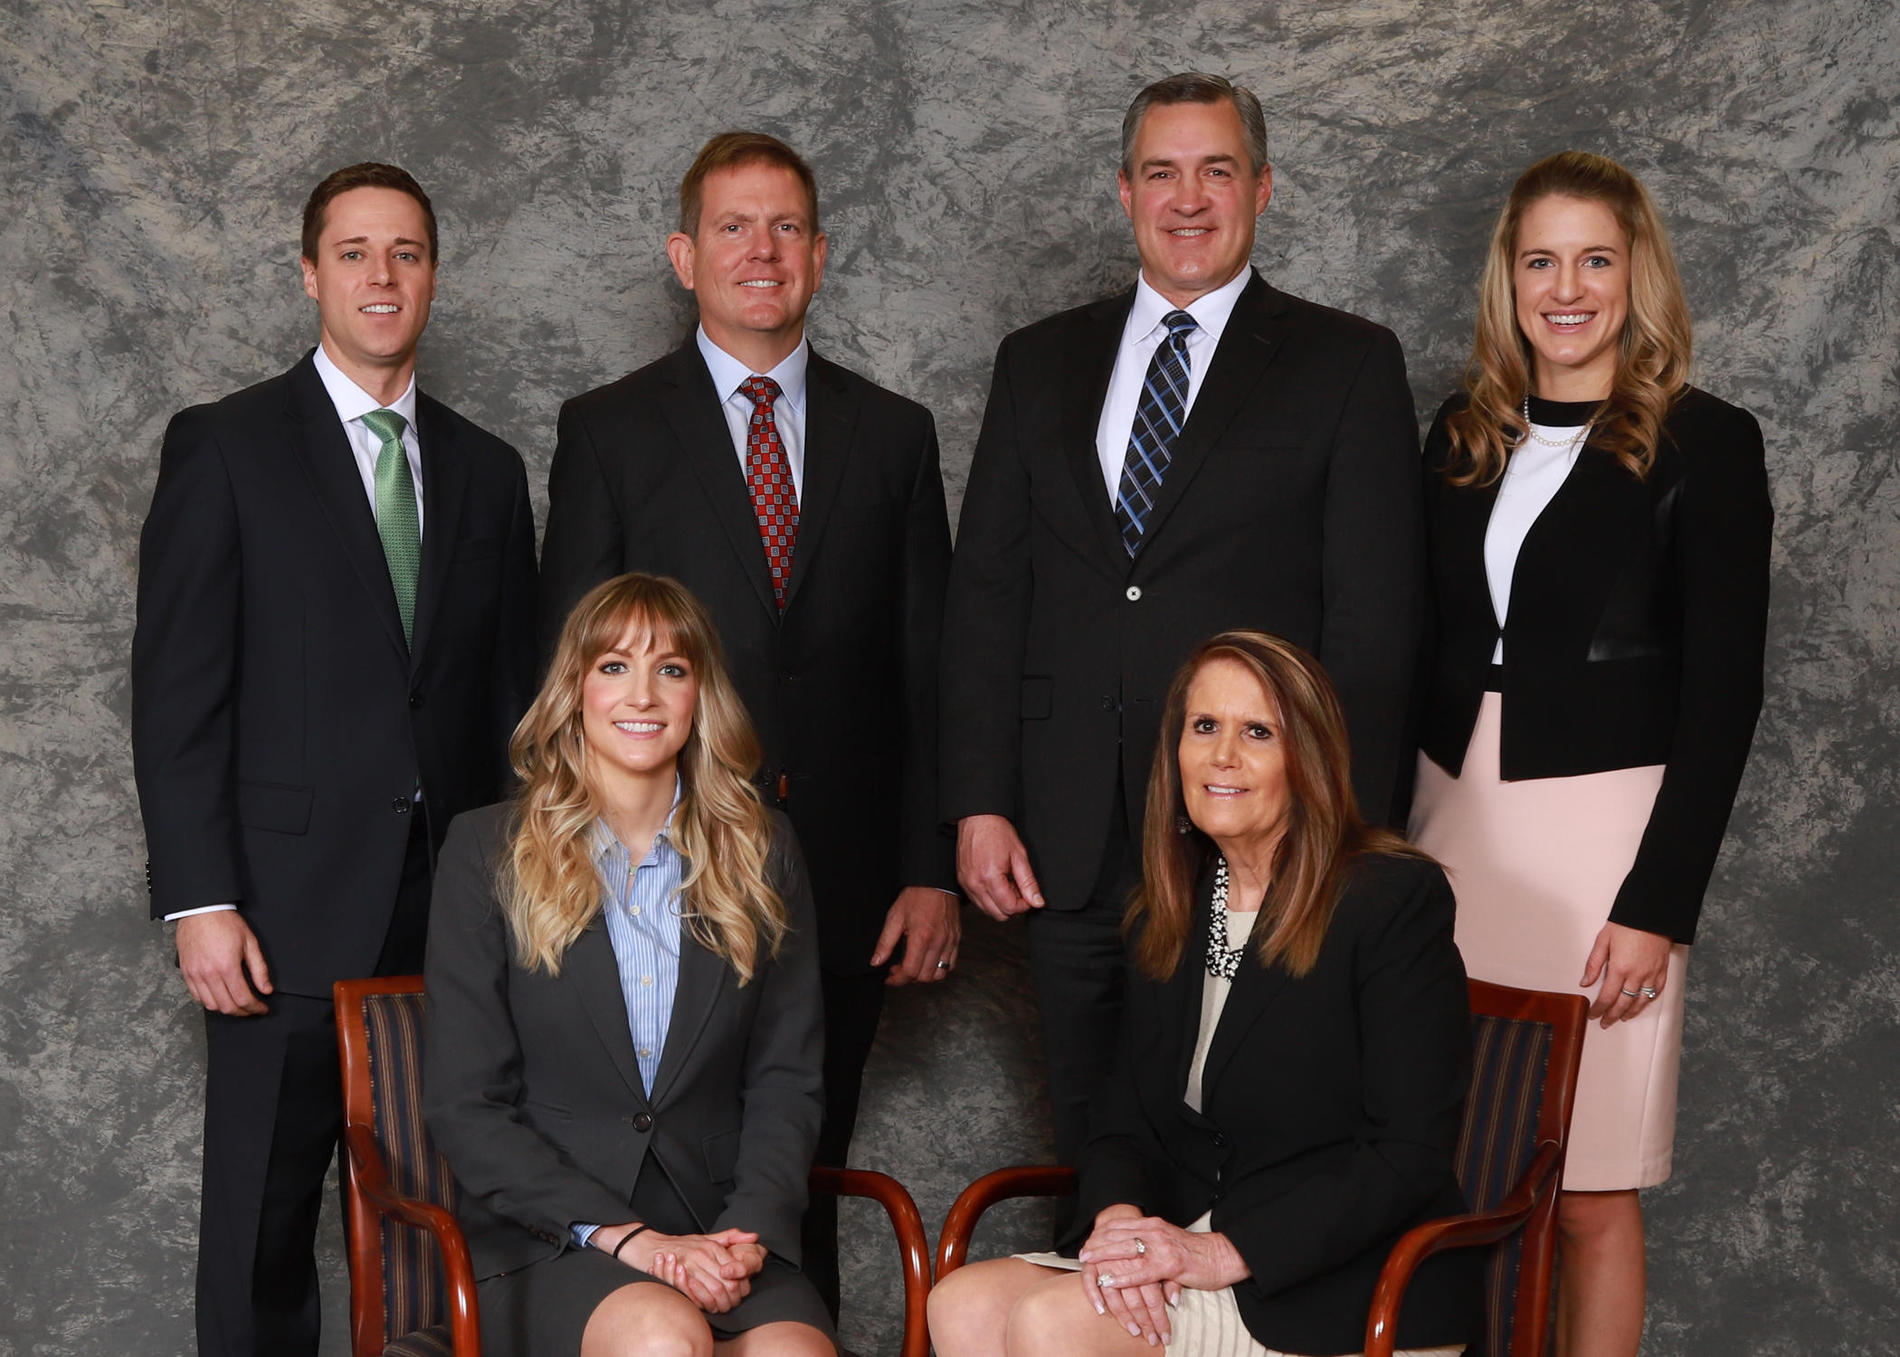 The Milestone Group Davenport Ia Morgan Stanley Wealth Management